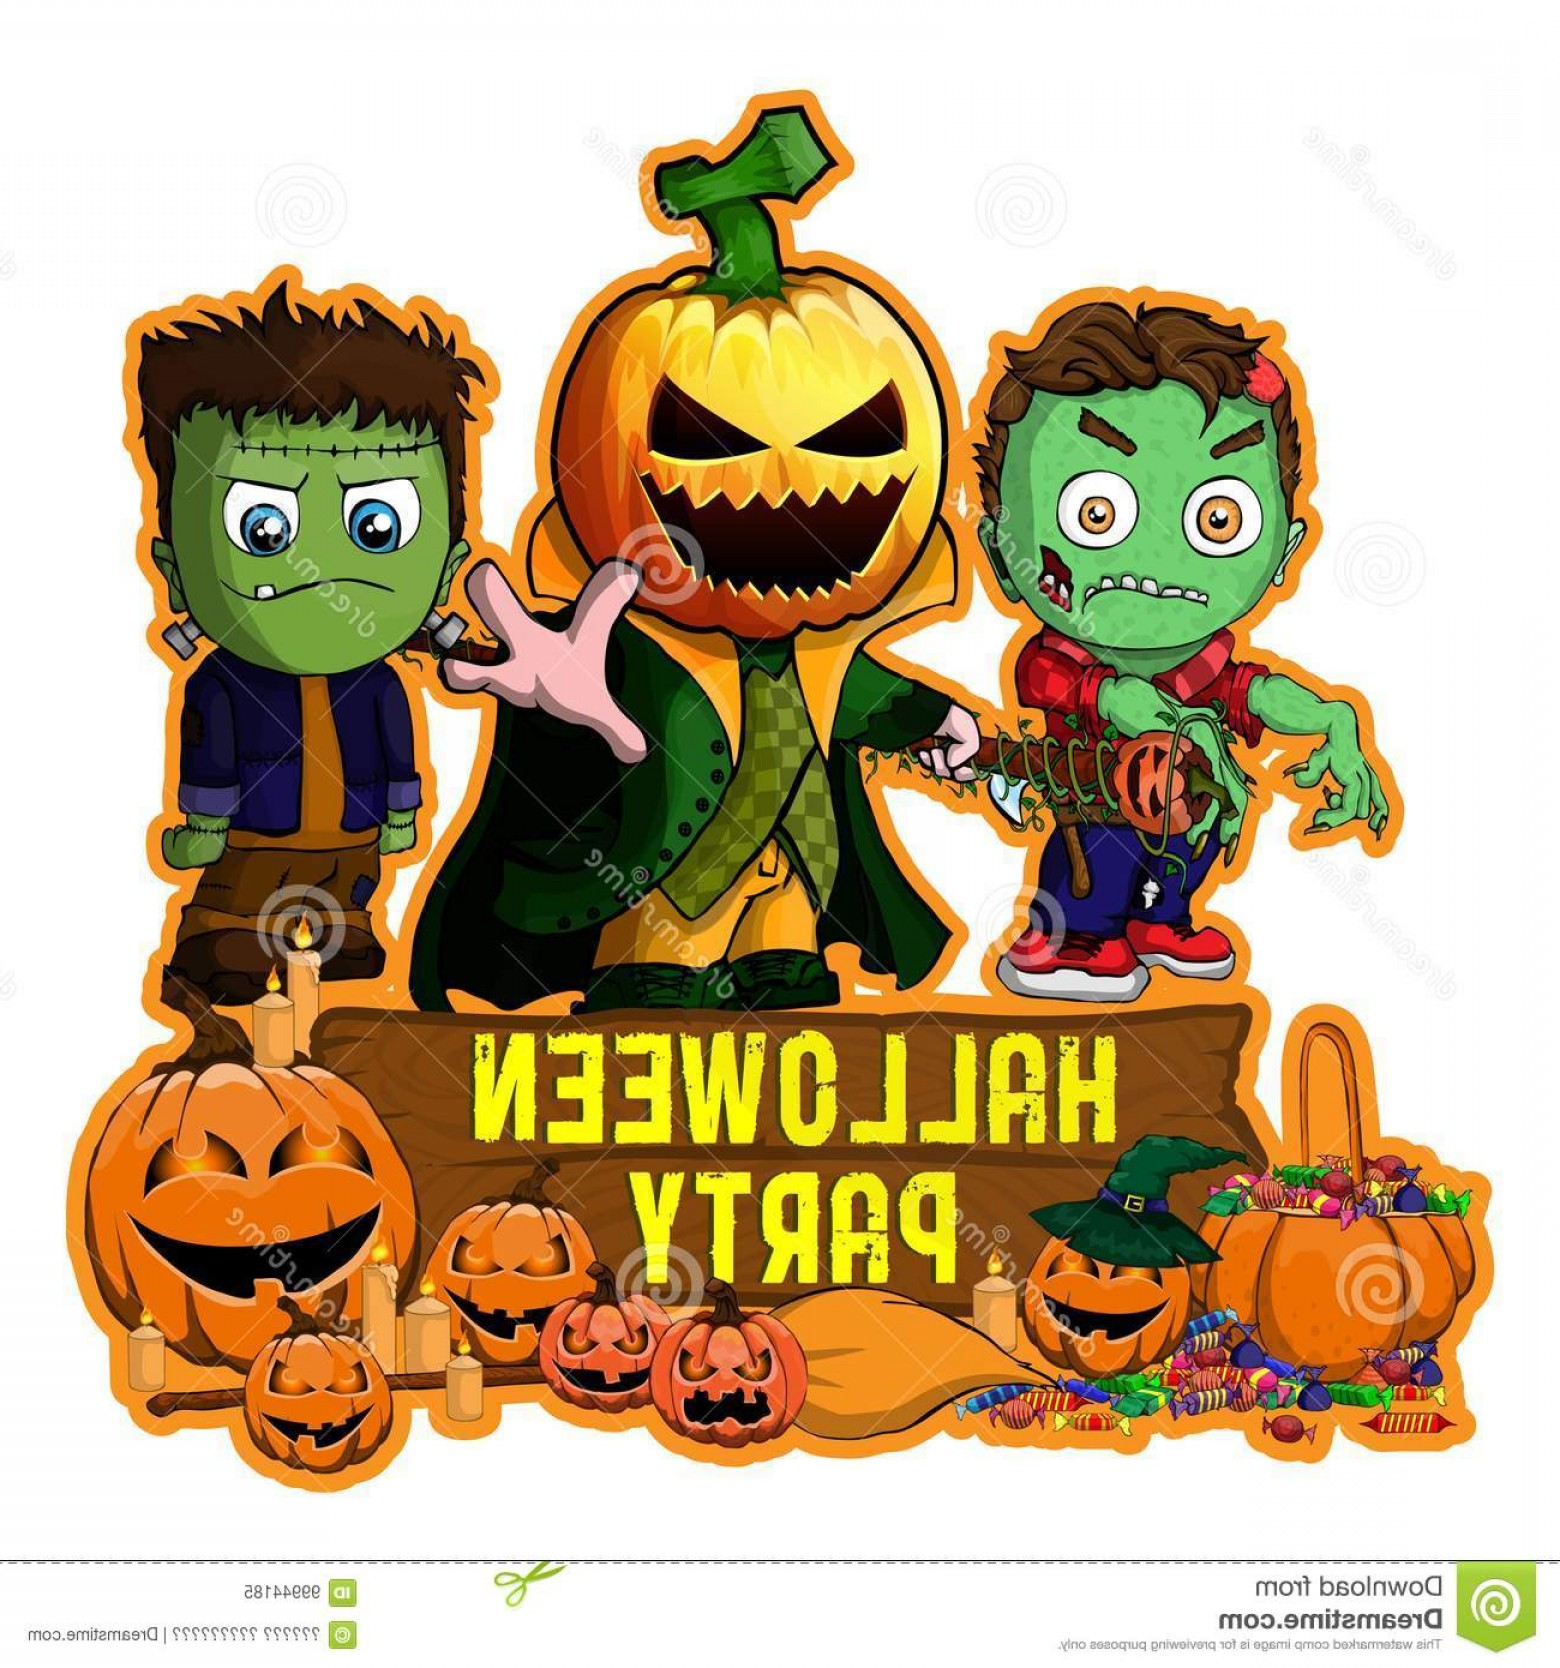 Frankenstein Vector Poster: Halloween Poster Design Vector Zombie Frankenstein Pumpkin Cartoon Characters File Layers Editable Halloween Image